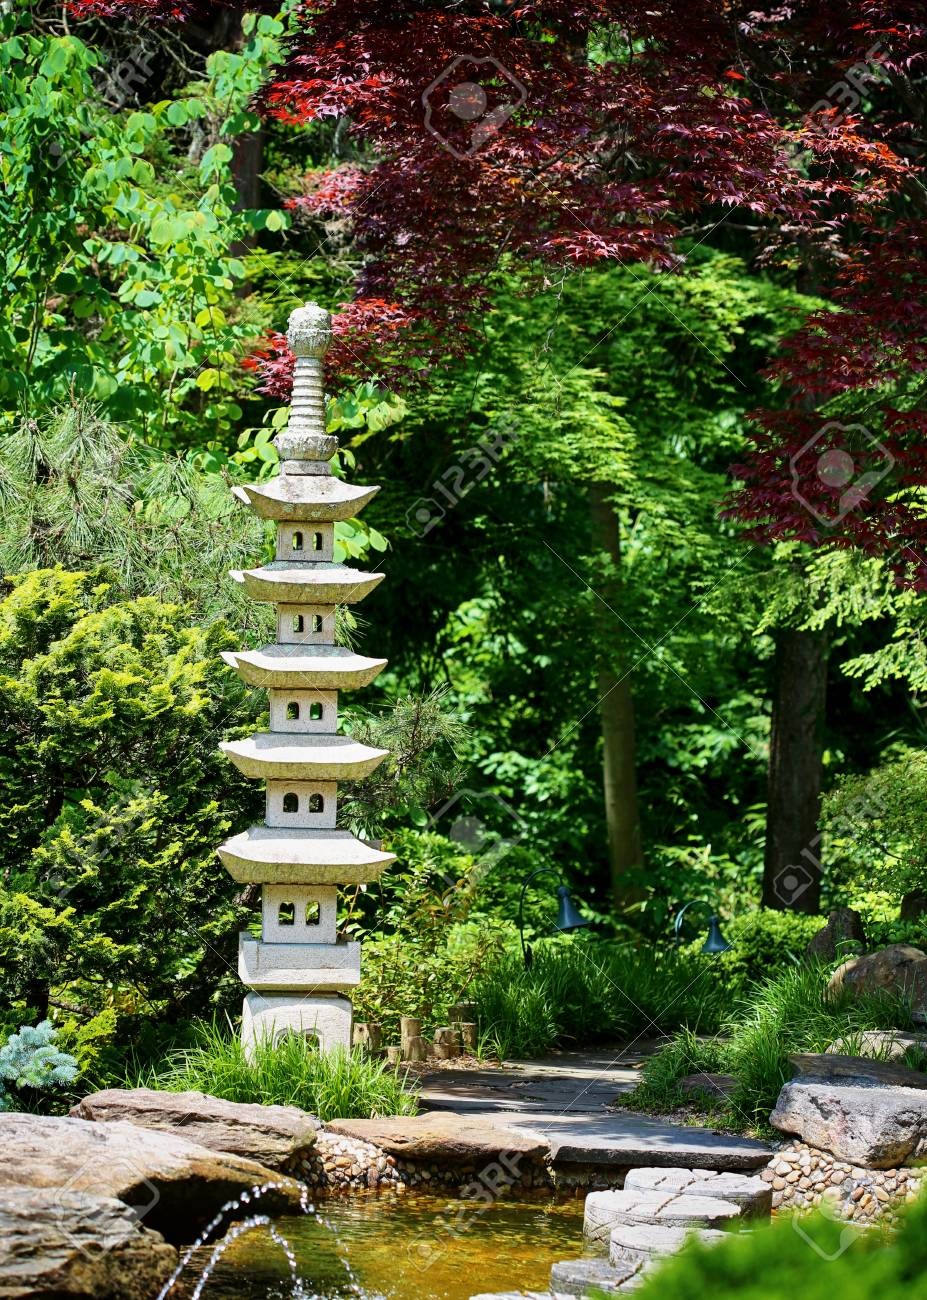 A Chinese Or Japanese Garden With Small Pagoda Sculpture Stock